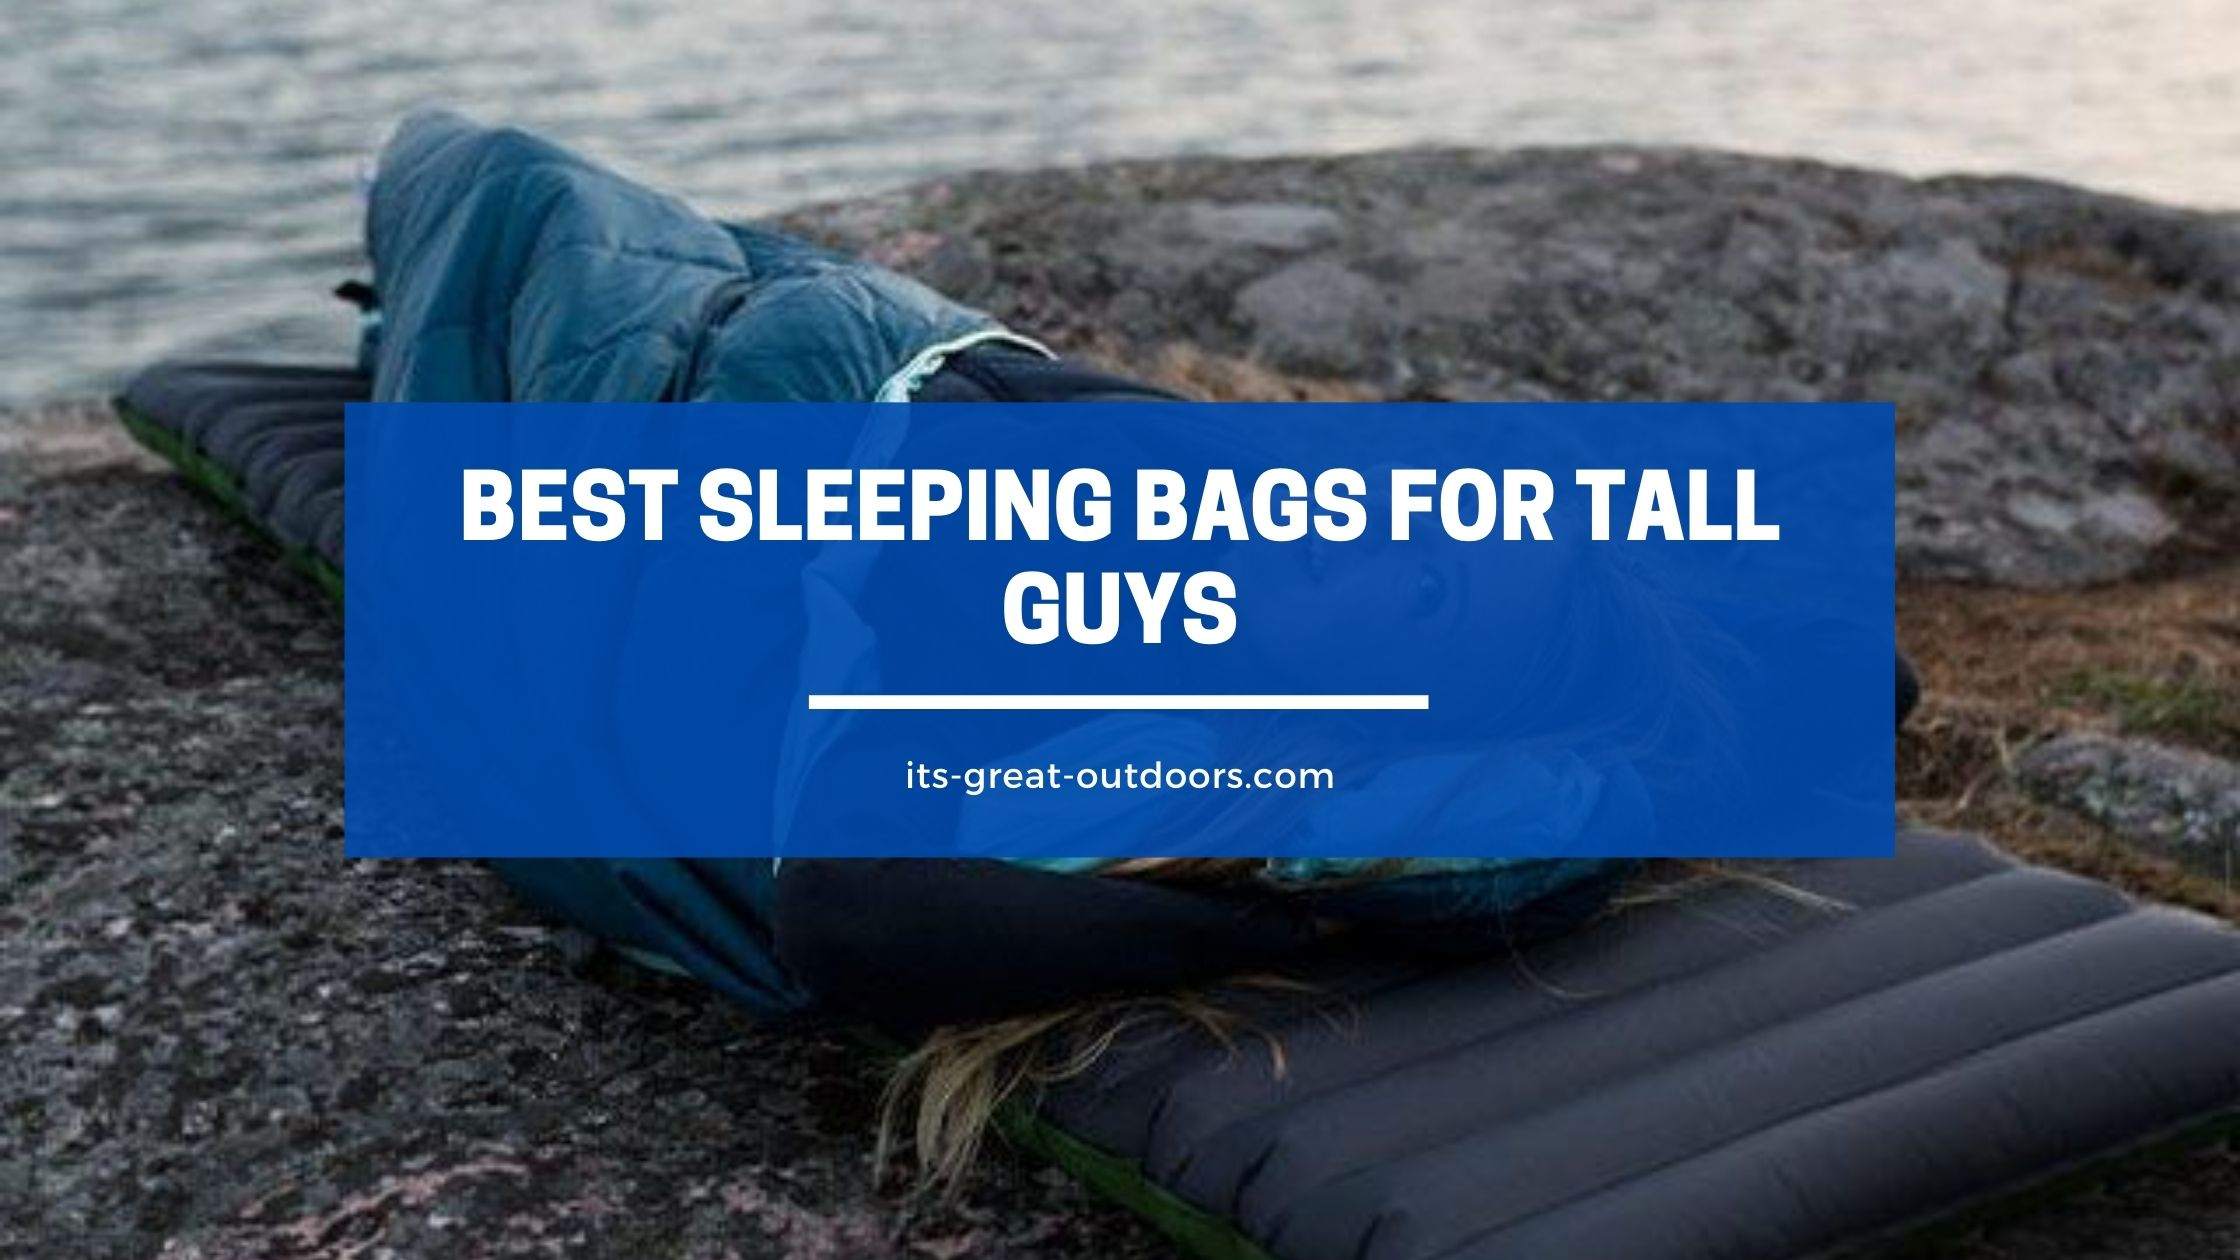 Best Sleeping Bags for Tall Guys